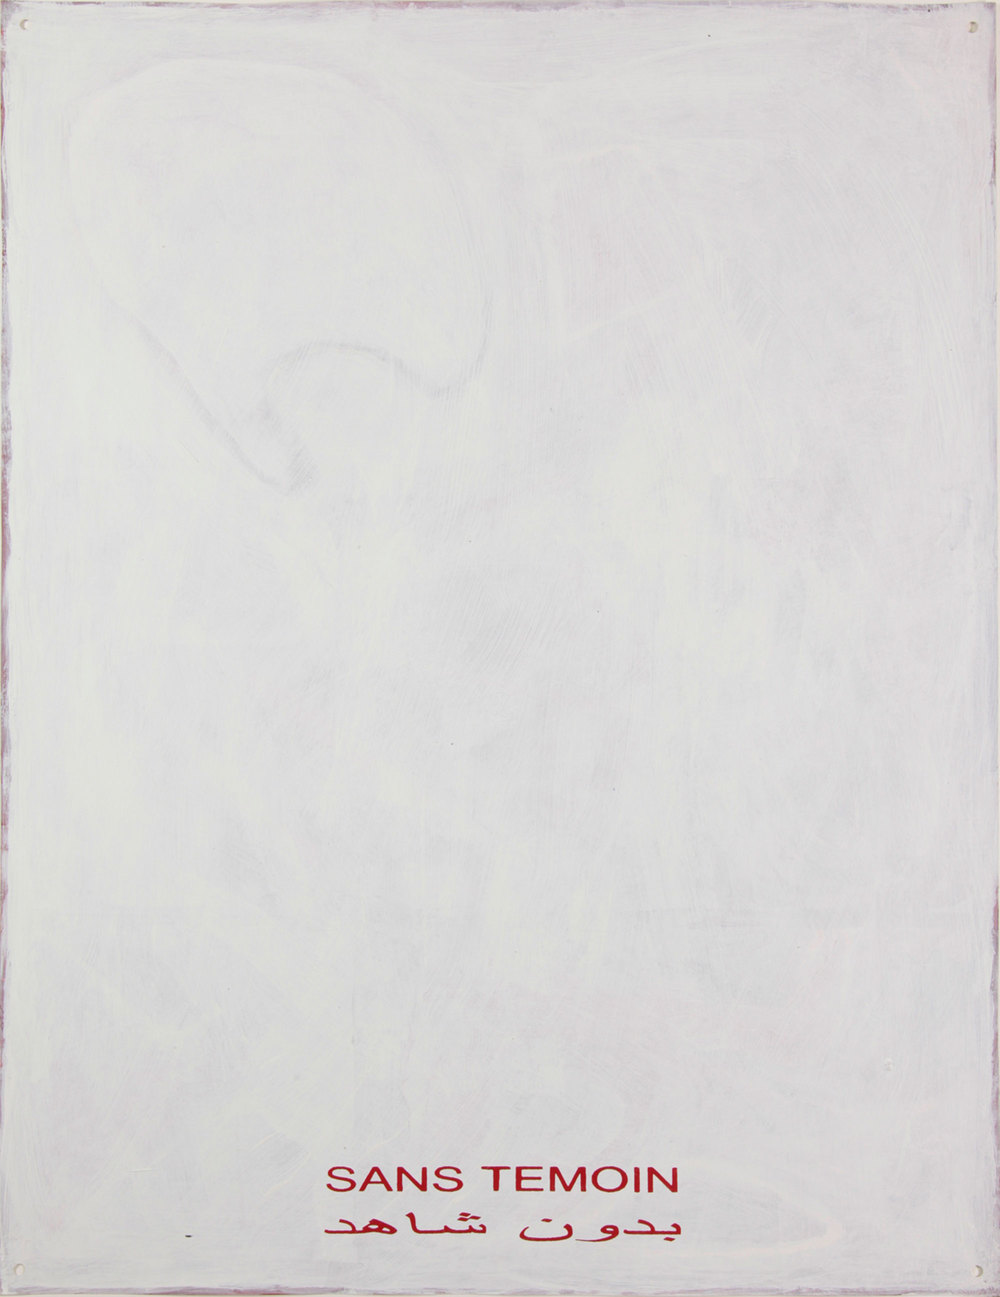 No Witness, (Portrait format) series started in 1996, 1995 paintings erased in 1996, 25,5 x 38 cm